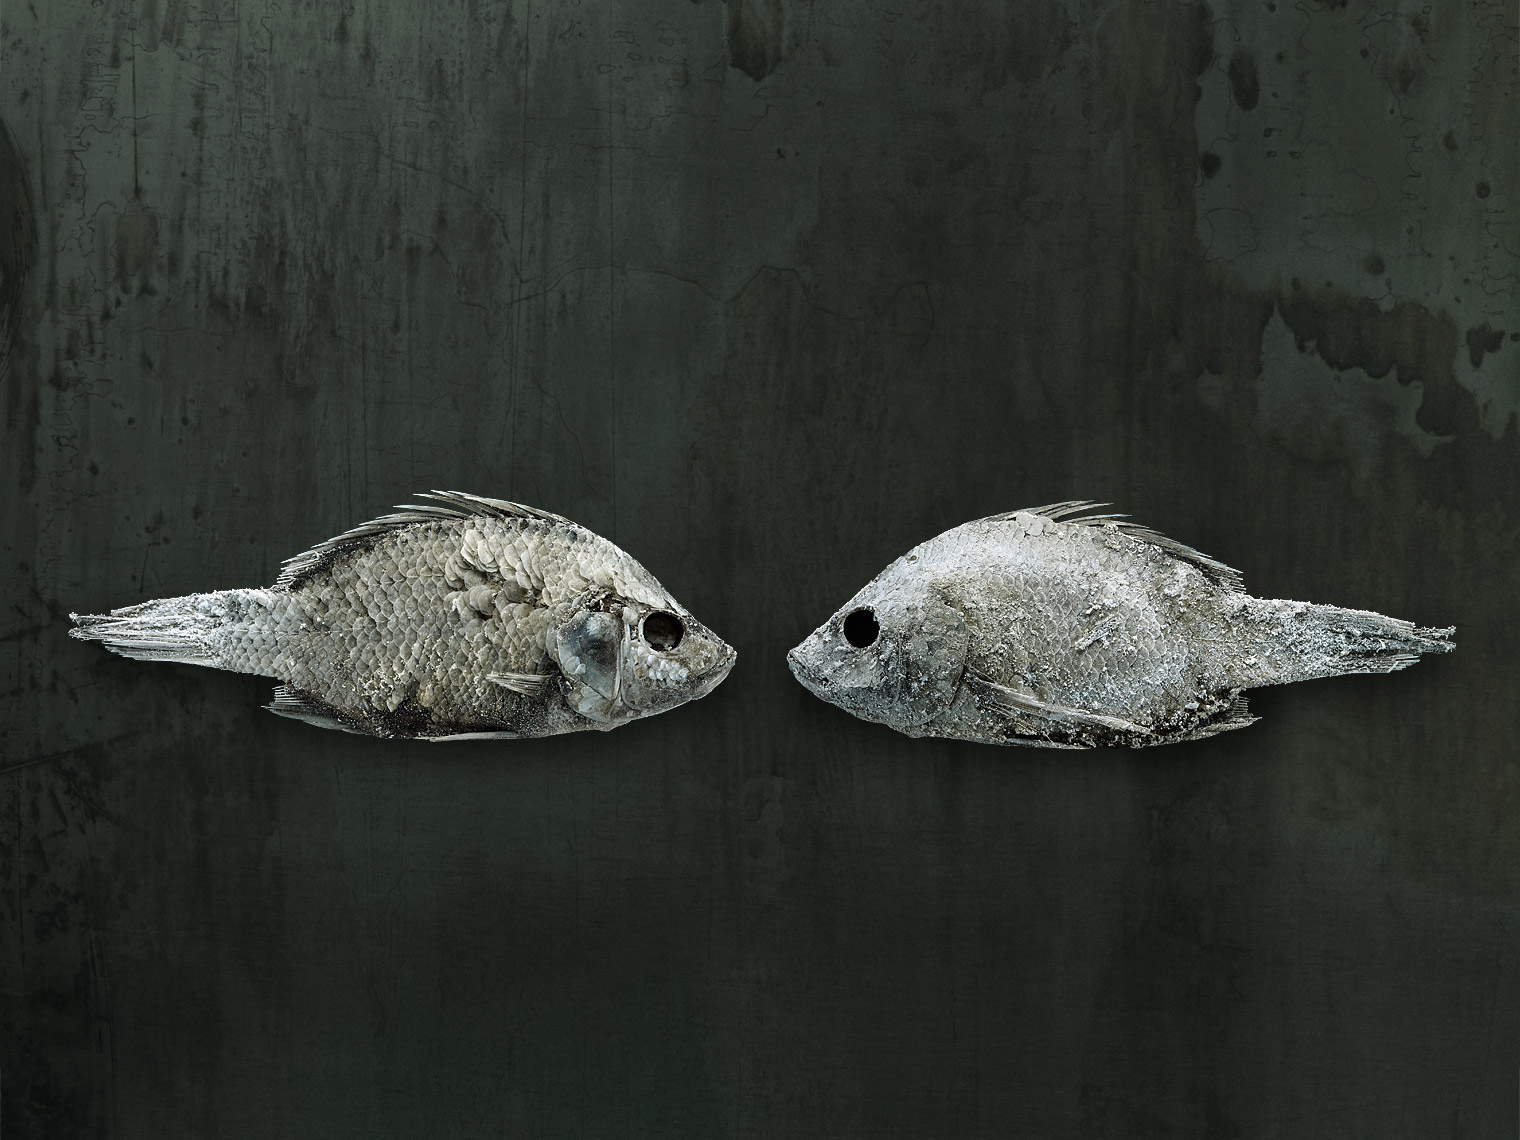 Salton Sea fish still life by wildlife photographer Brad Wilson